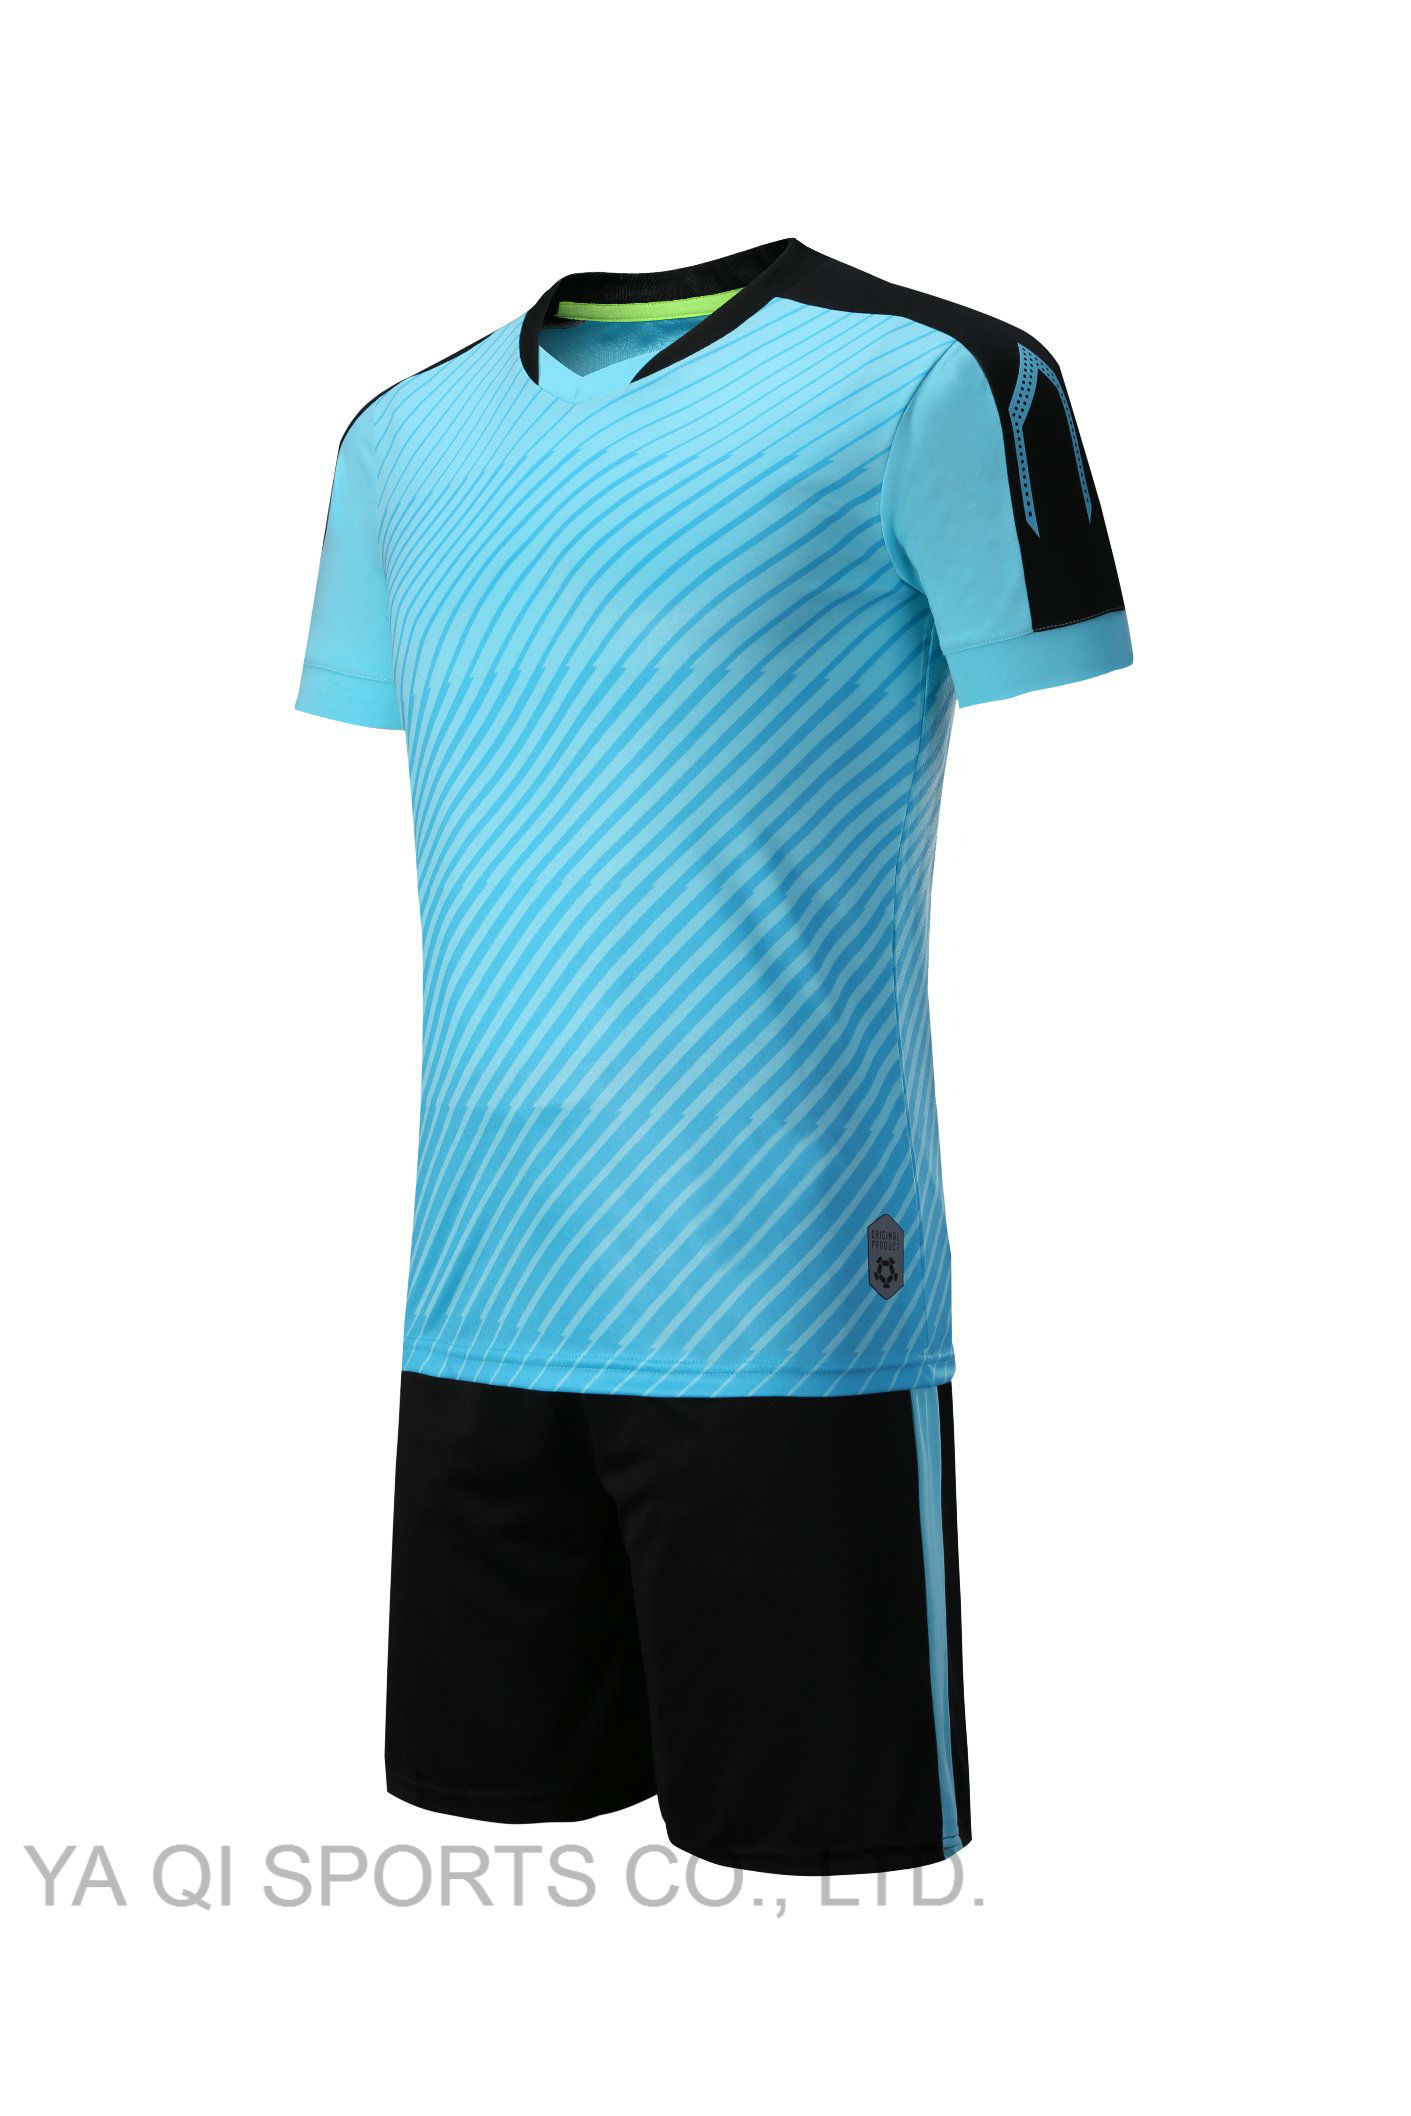 China Wholesale Youth Soccer Uniform Training Football Jerseys Soccer  Uniforms New Design Soccer Jersey - China Men Suits ccc61075a